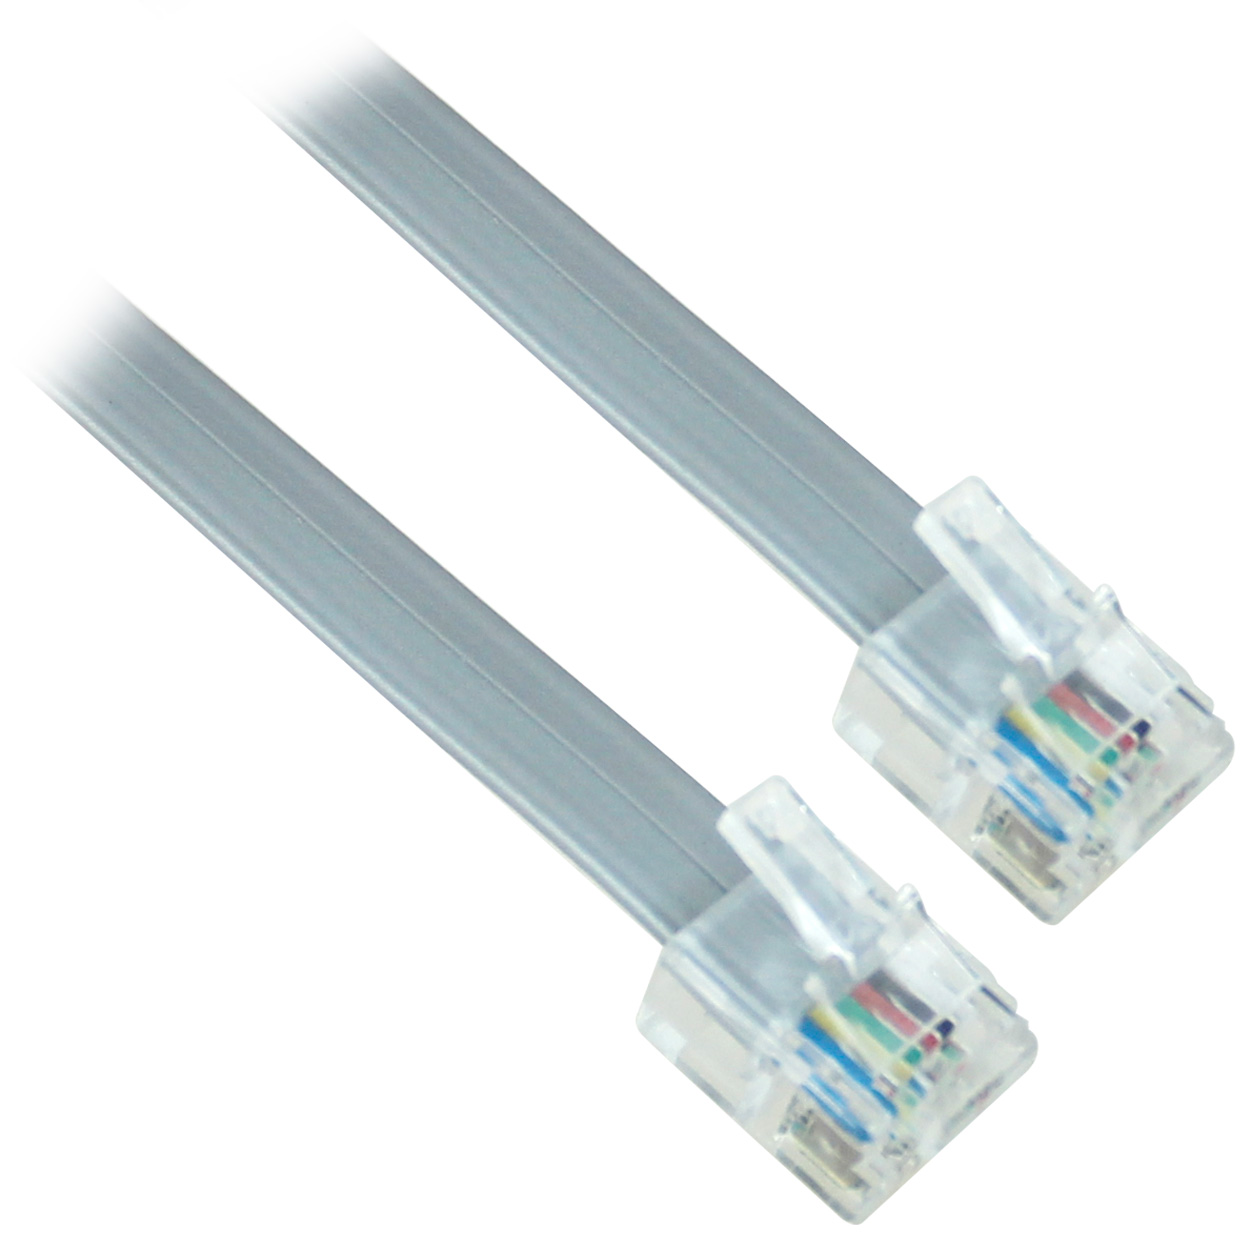 telephone rj12 wiring 25ft 28awg rj12 6p6c phone cable, reverse, bare copper ... usb to rj12 wiring diagram